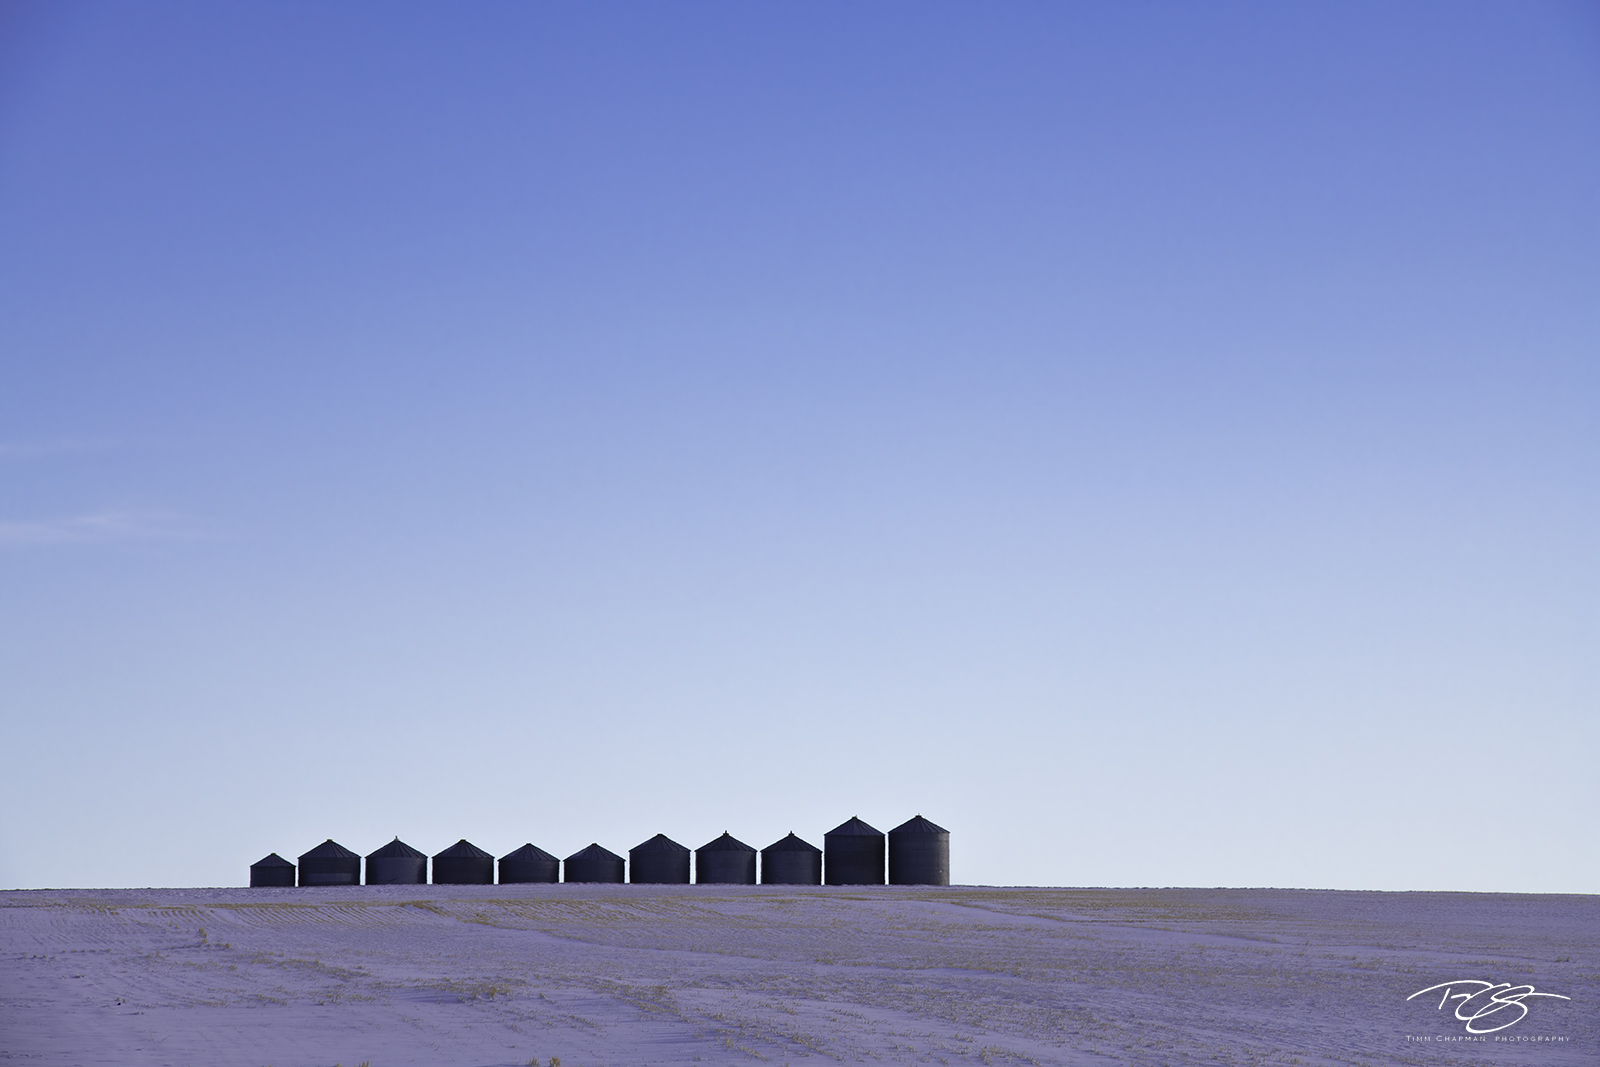 A line of silos stand shoulder to shoulder beneath the grand canopy of the prairie sky